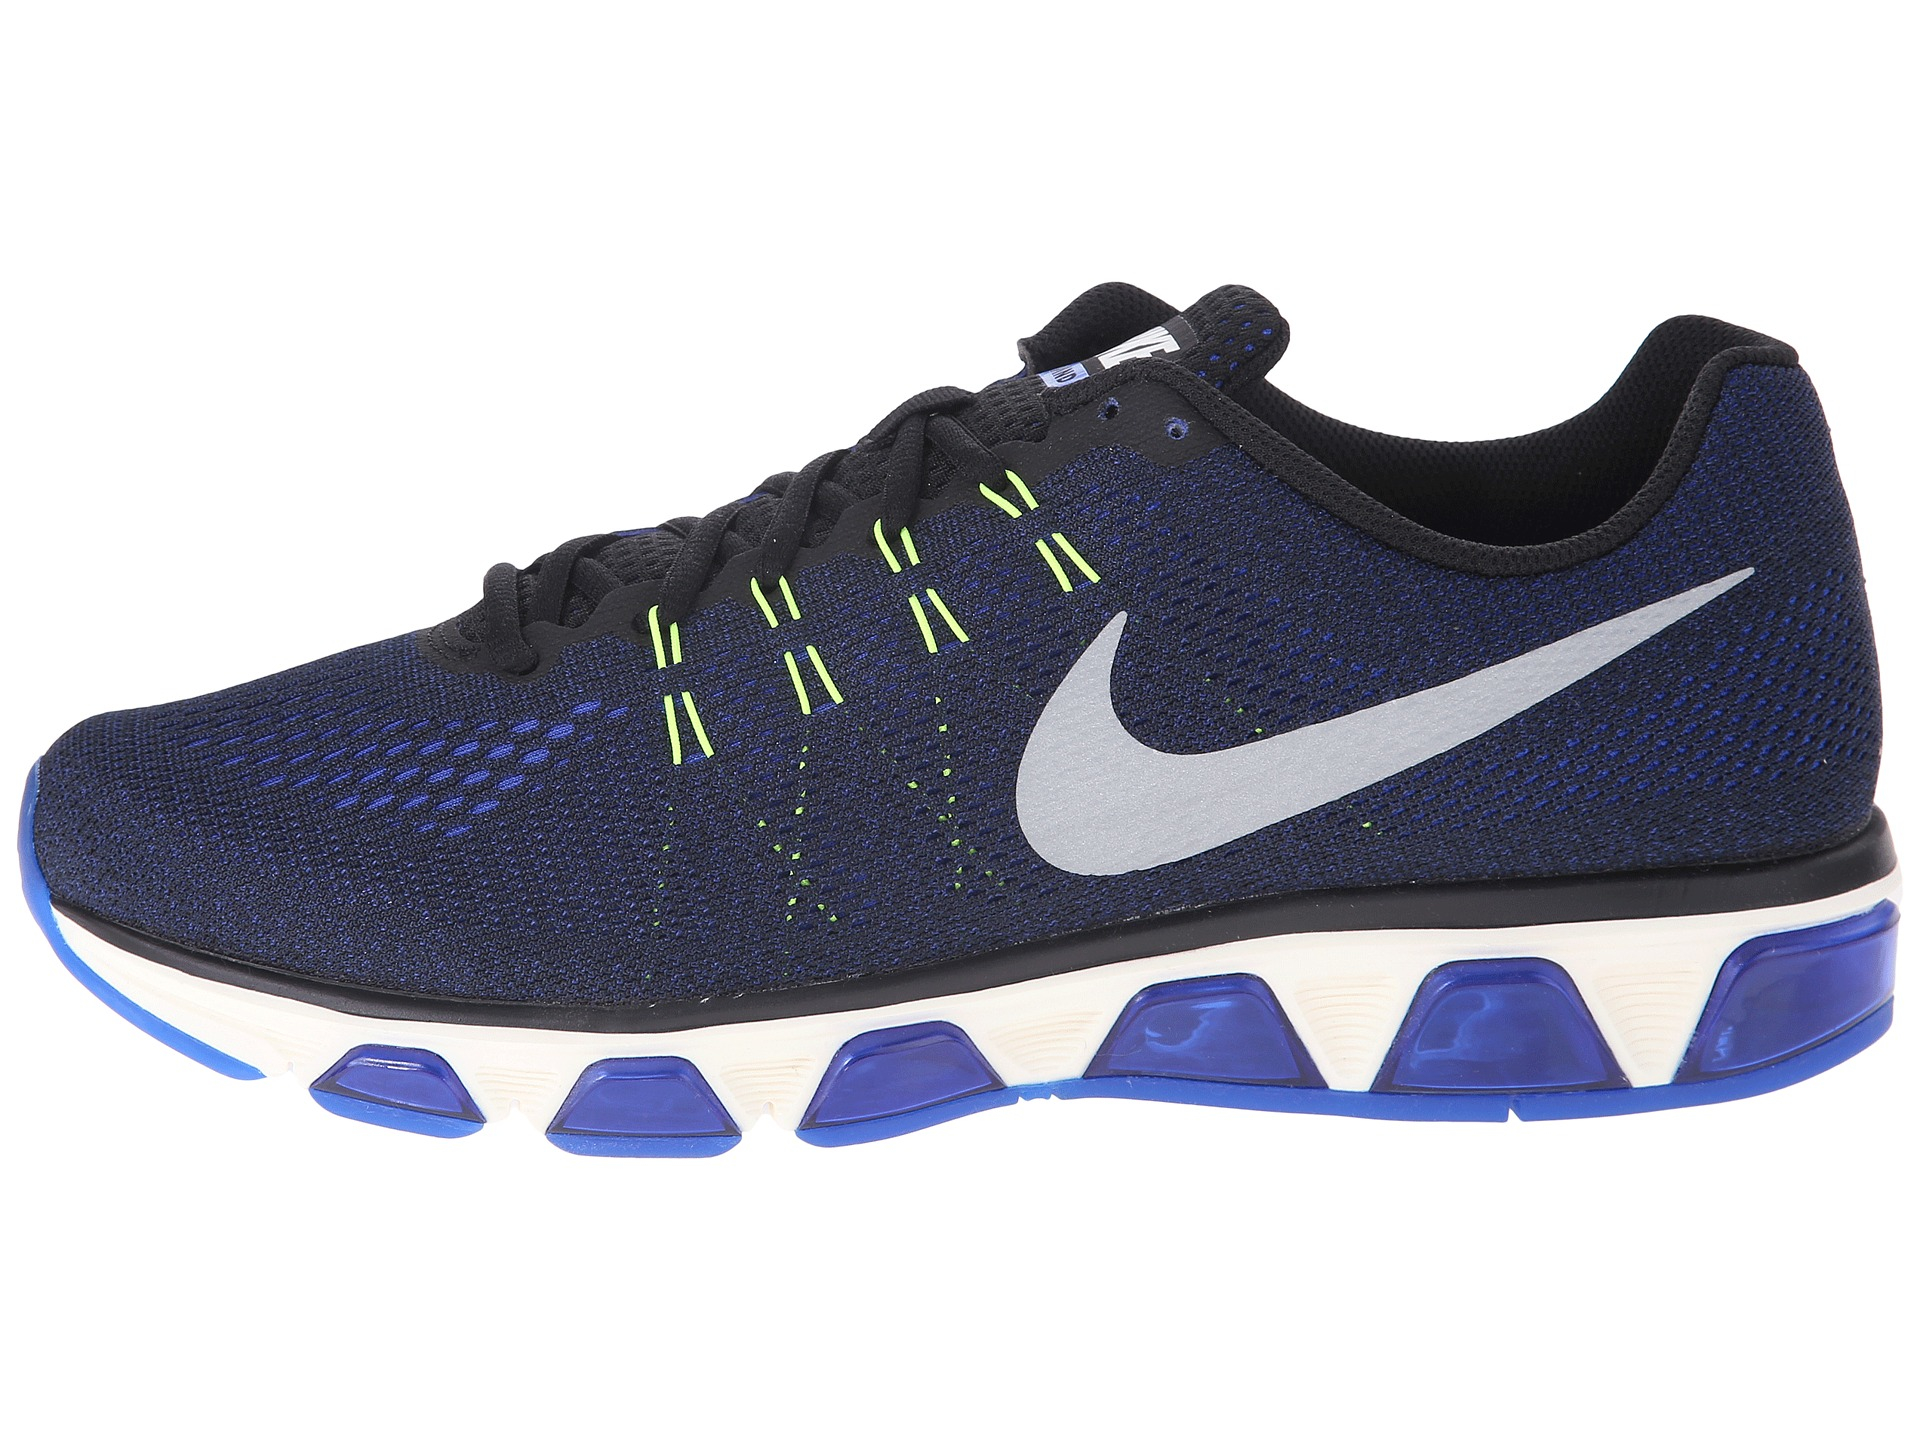 best loved cb785 cc6fc ... switzerland lyst nike air max tailwind 8 in blue for men dcf7e a2df0